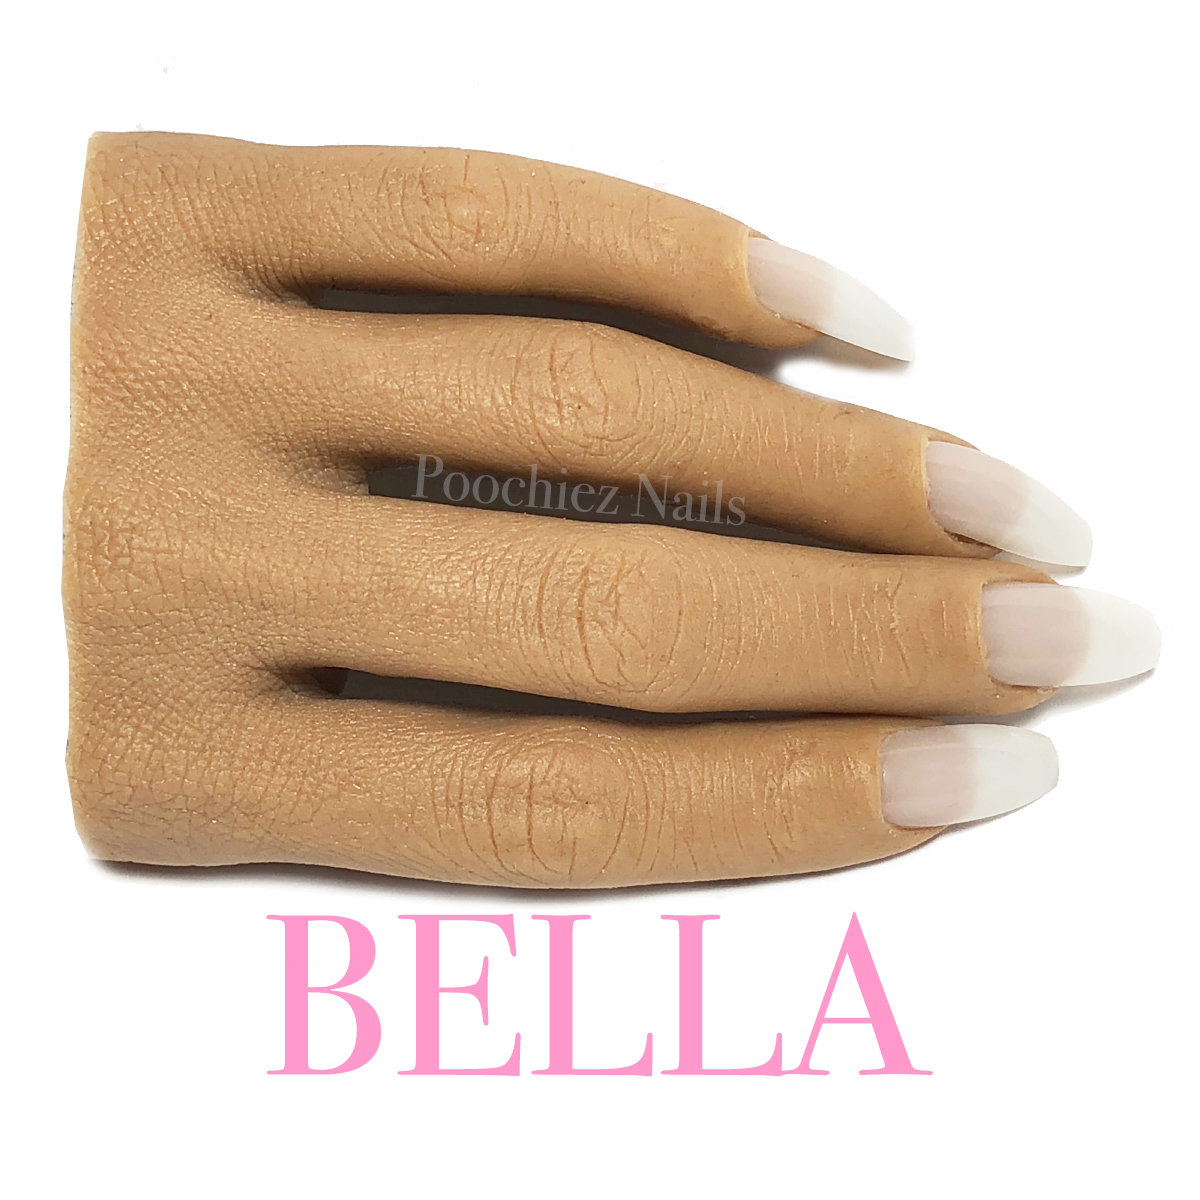 (H1) BELLA HALF REALISTIC PRACTICE HAND ( PLEASE READ THE DIRECTIONS & WATCH THE VIDEOS BELOW) WILL TAKE 5-8 DAYS TO PROCESS.